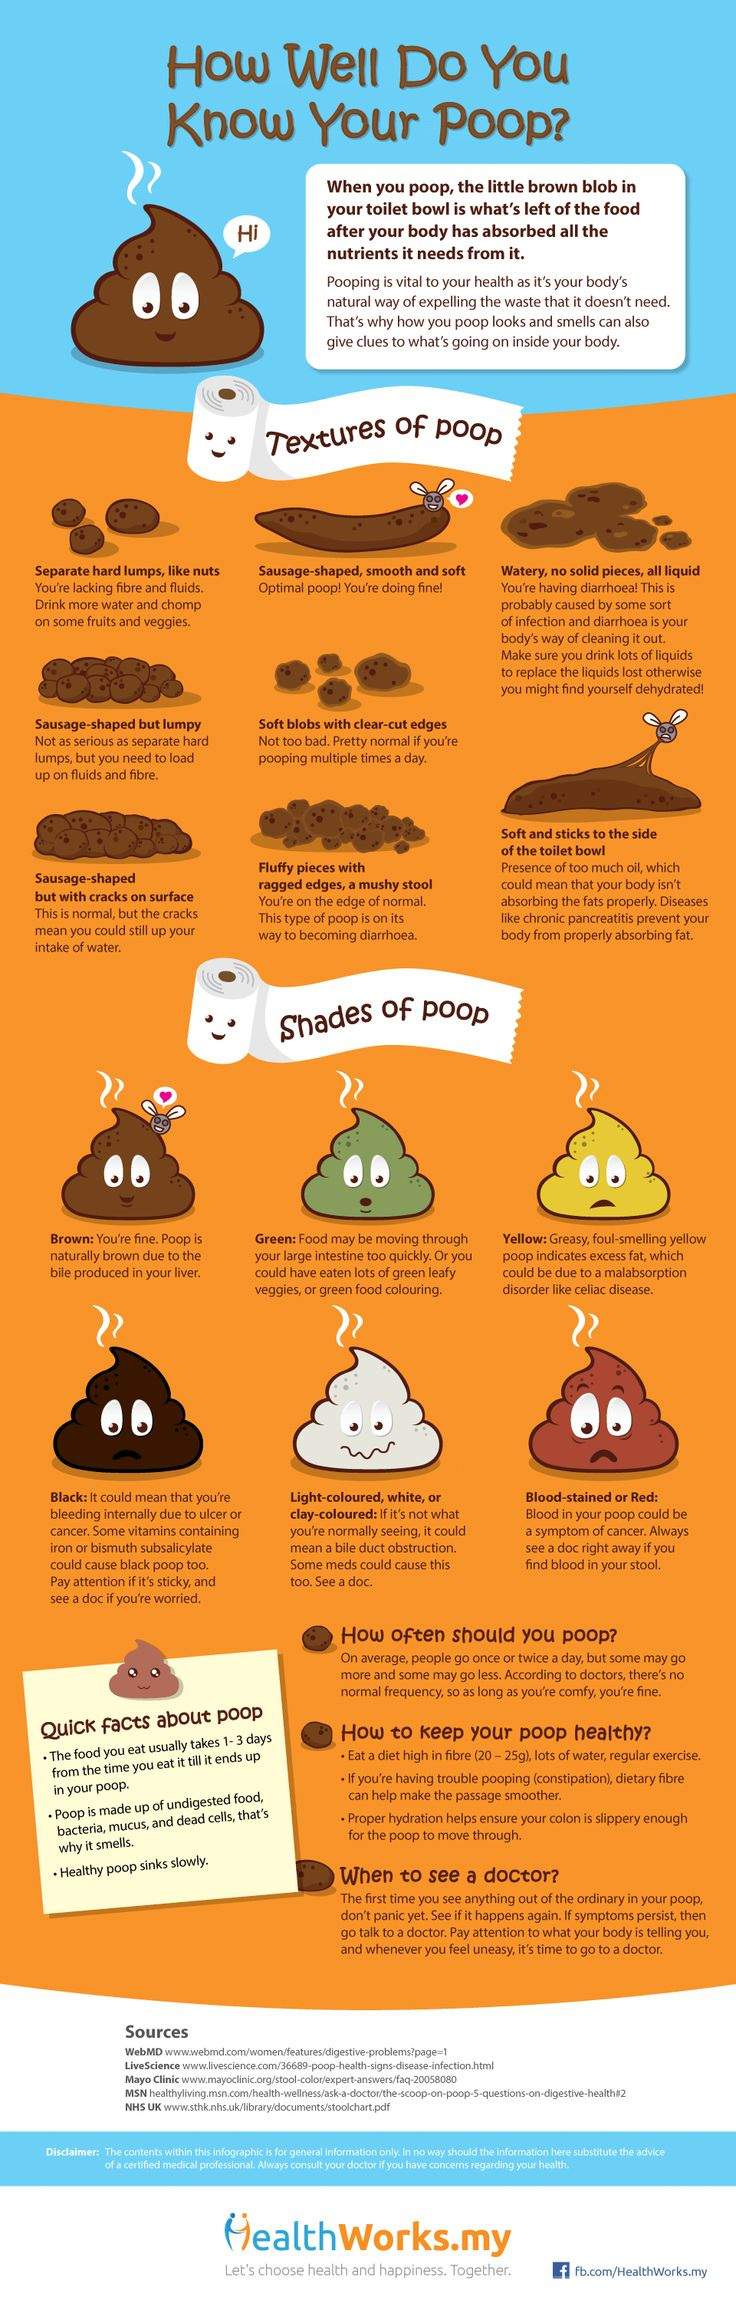 Poop-Infographic-Family-Friendly-Version. Because we all poop and should know…